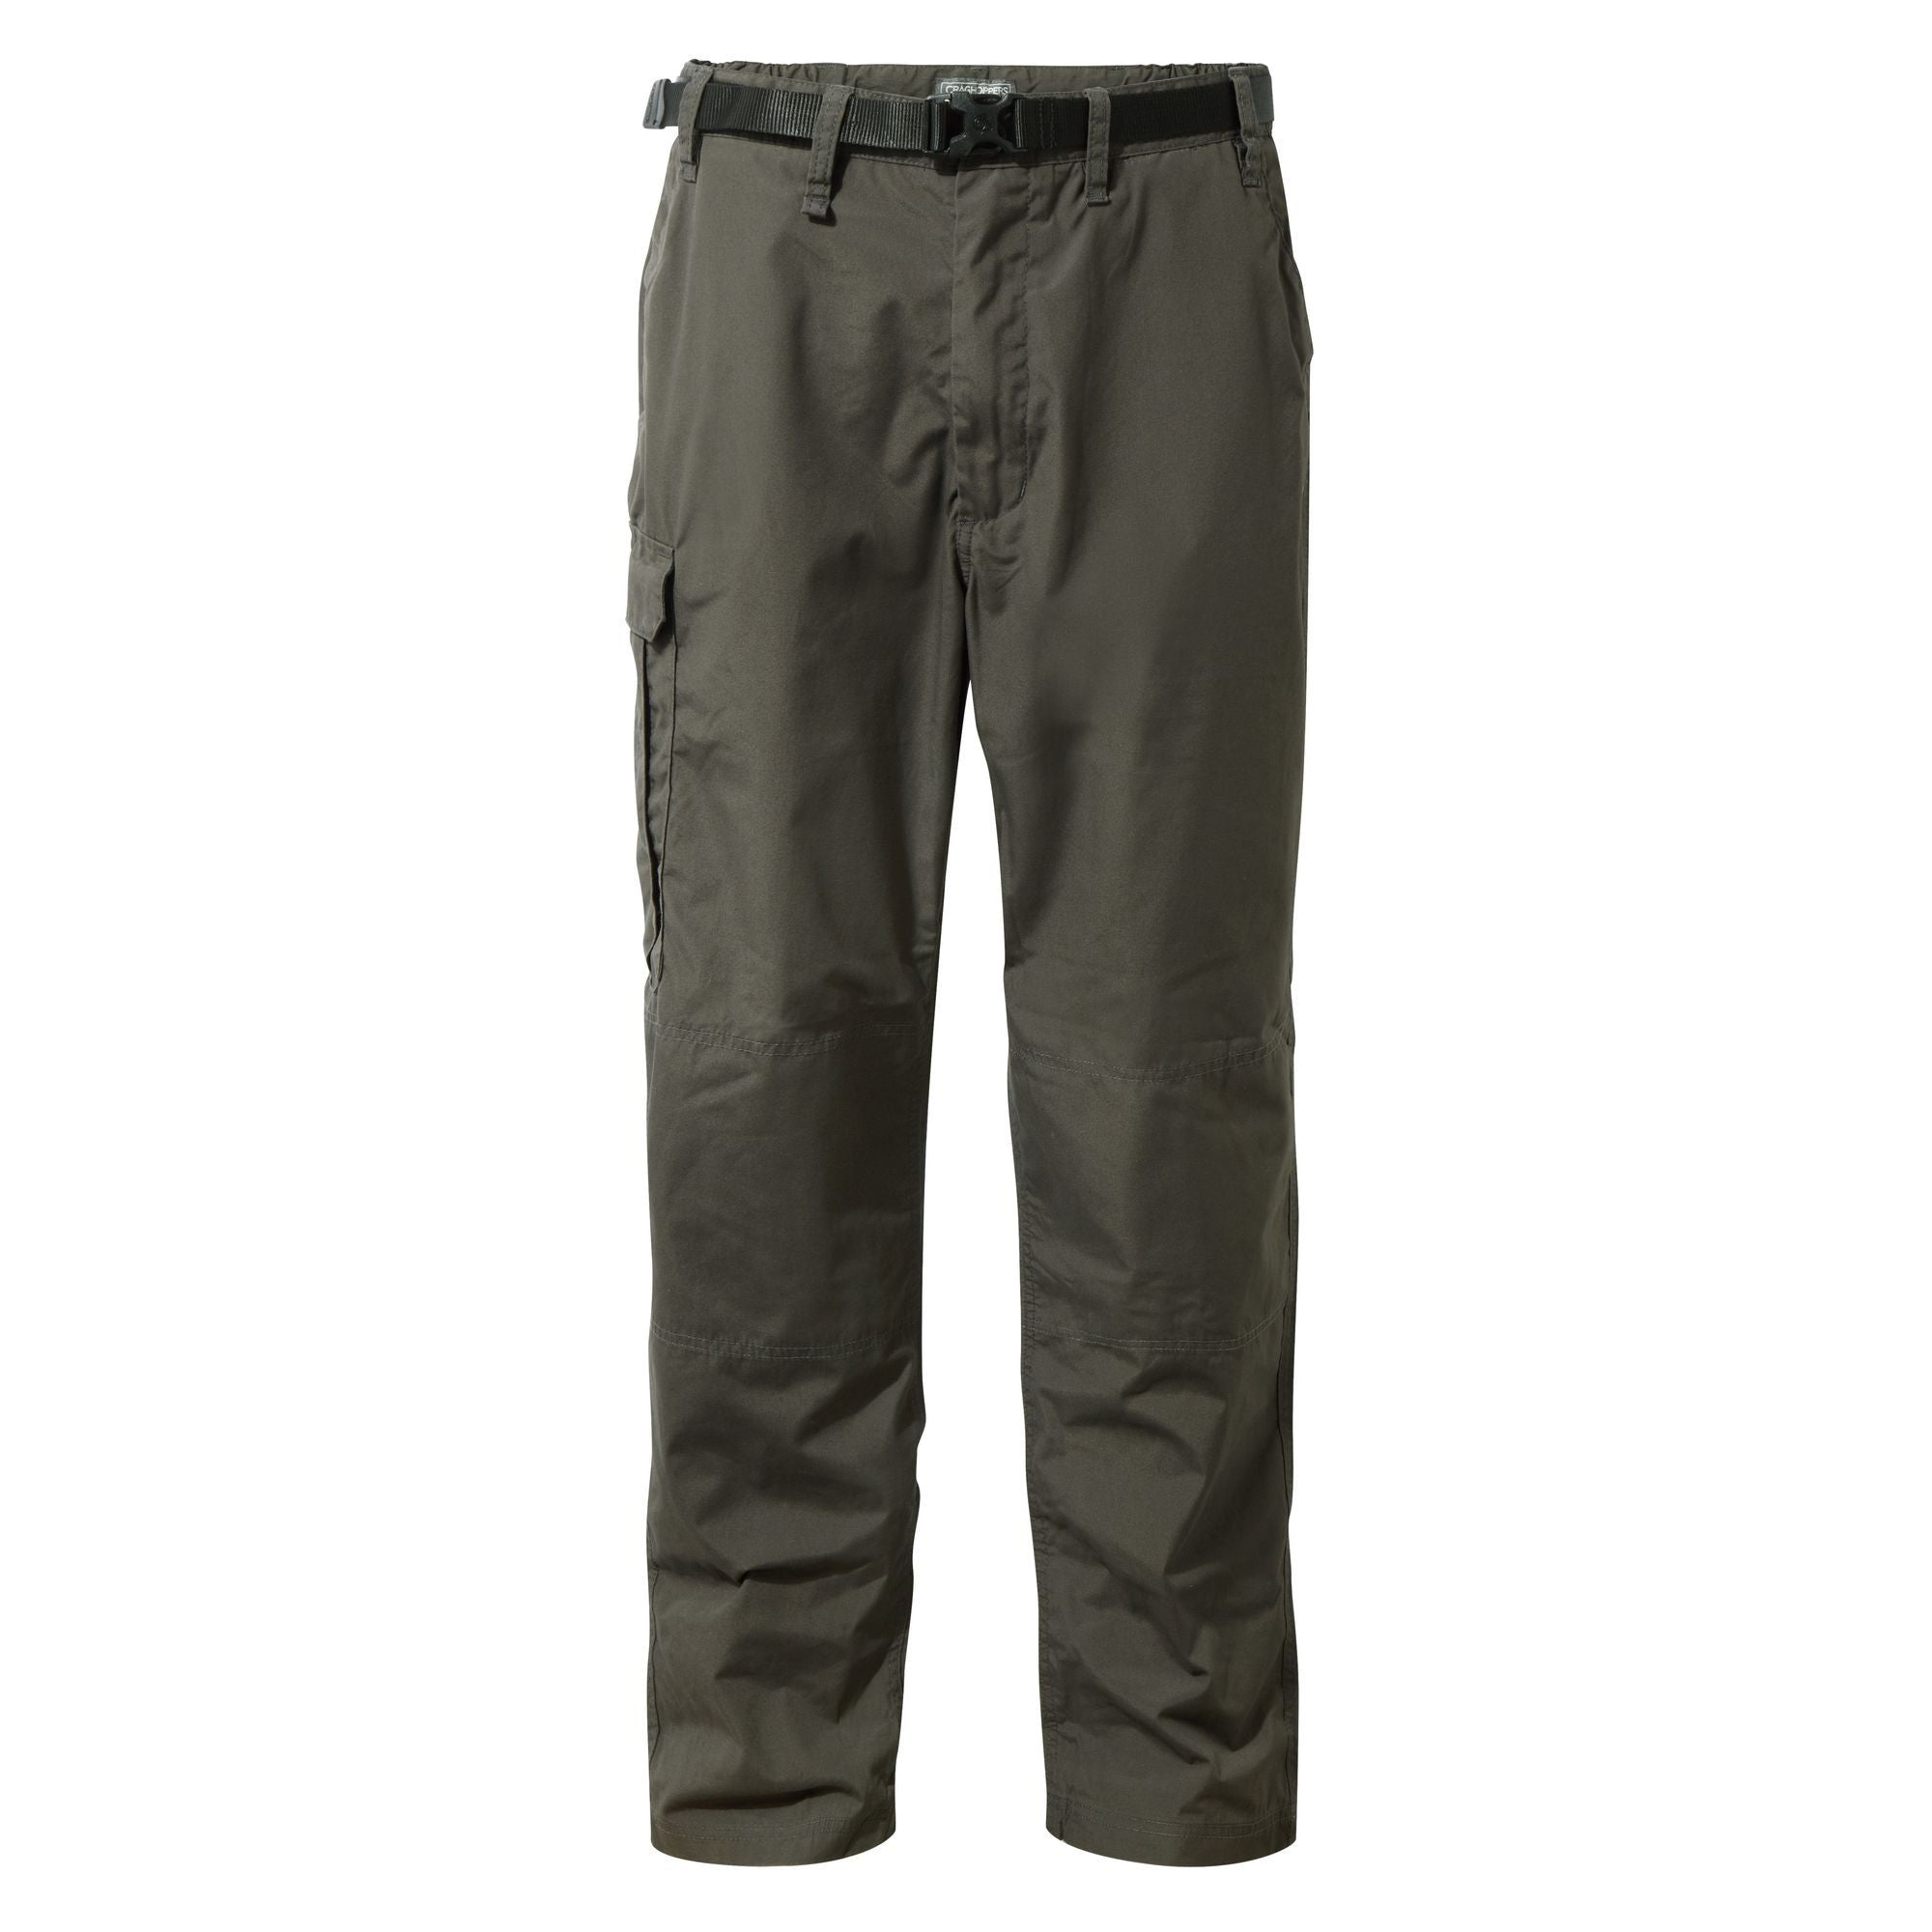 Craghoppers Classic Kiwi Trouser for Men in Bark